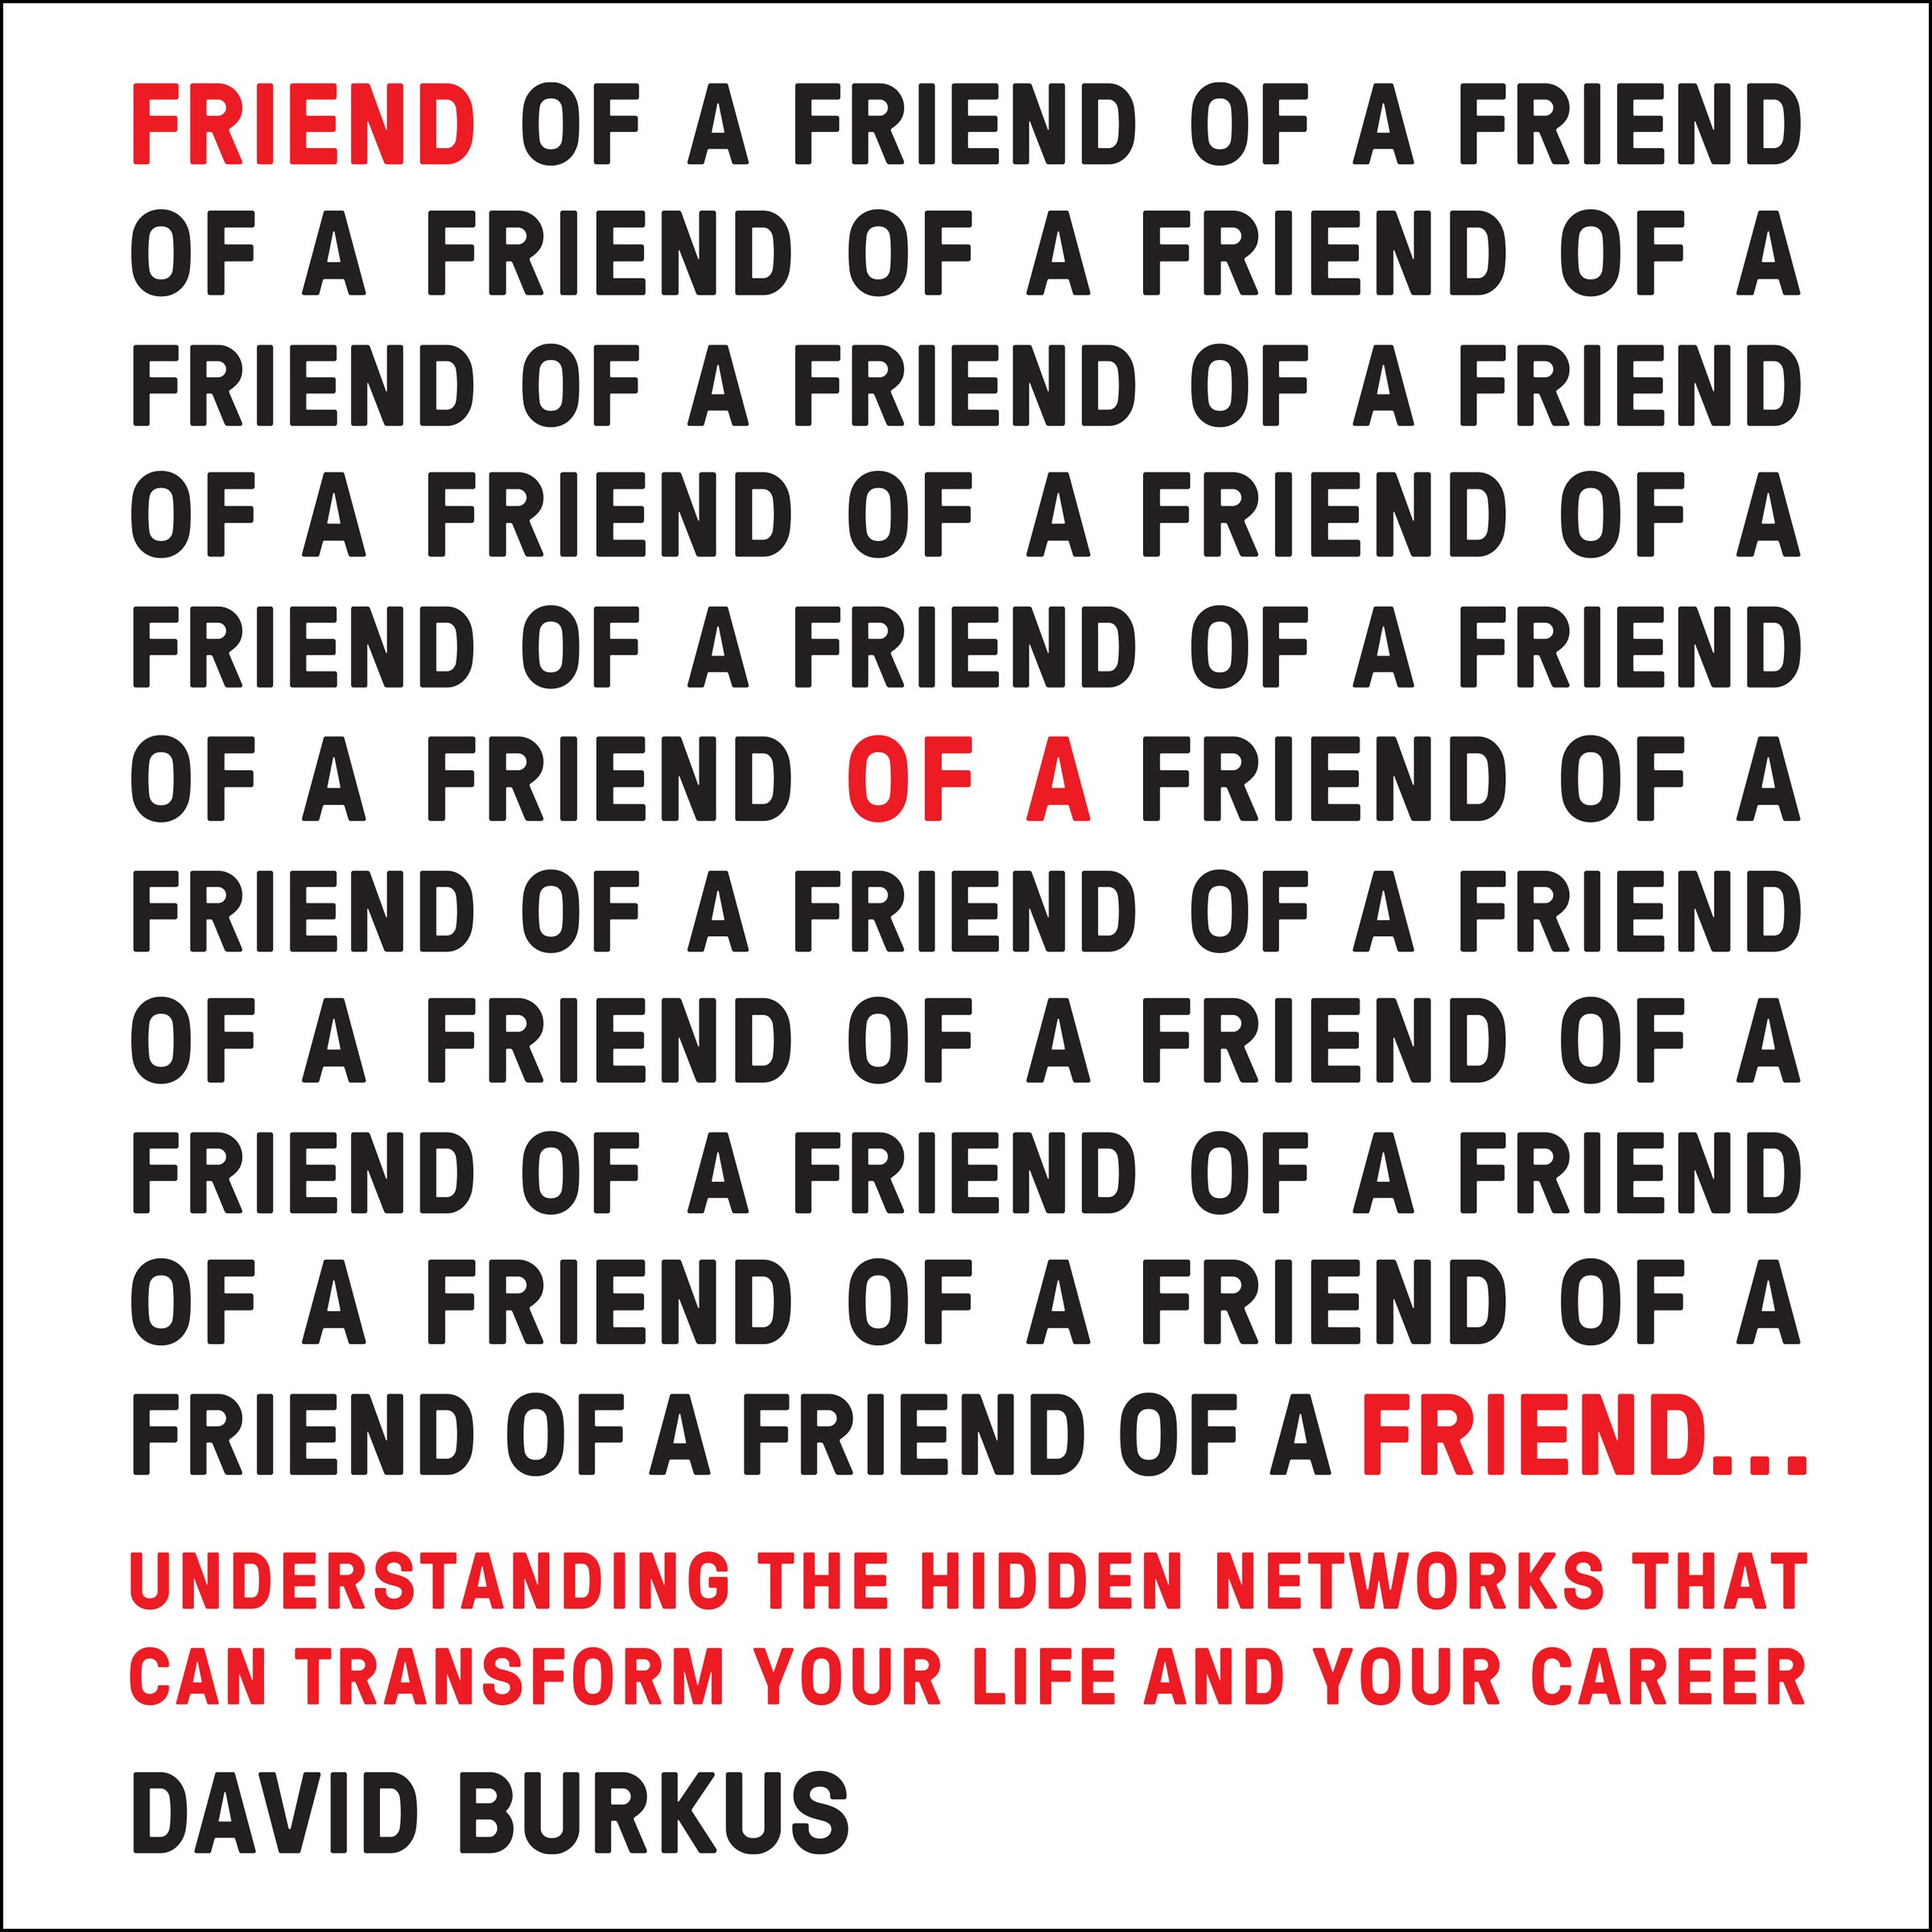 Friend of a Friend.: Understanding the Hidden Networks That Can Transform Your Life and Your Career